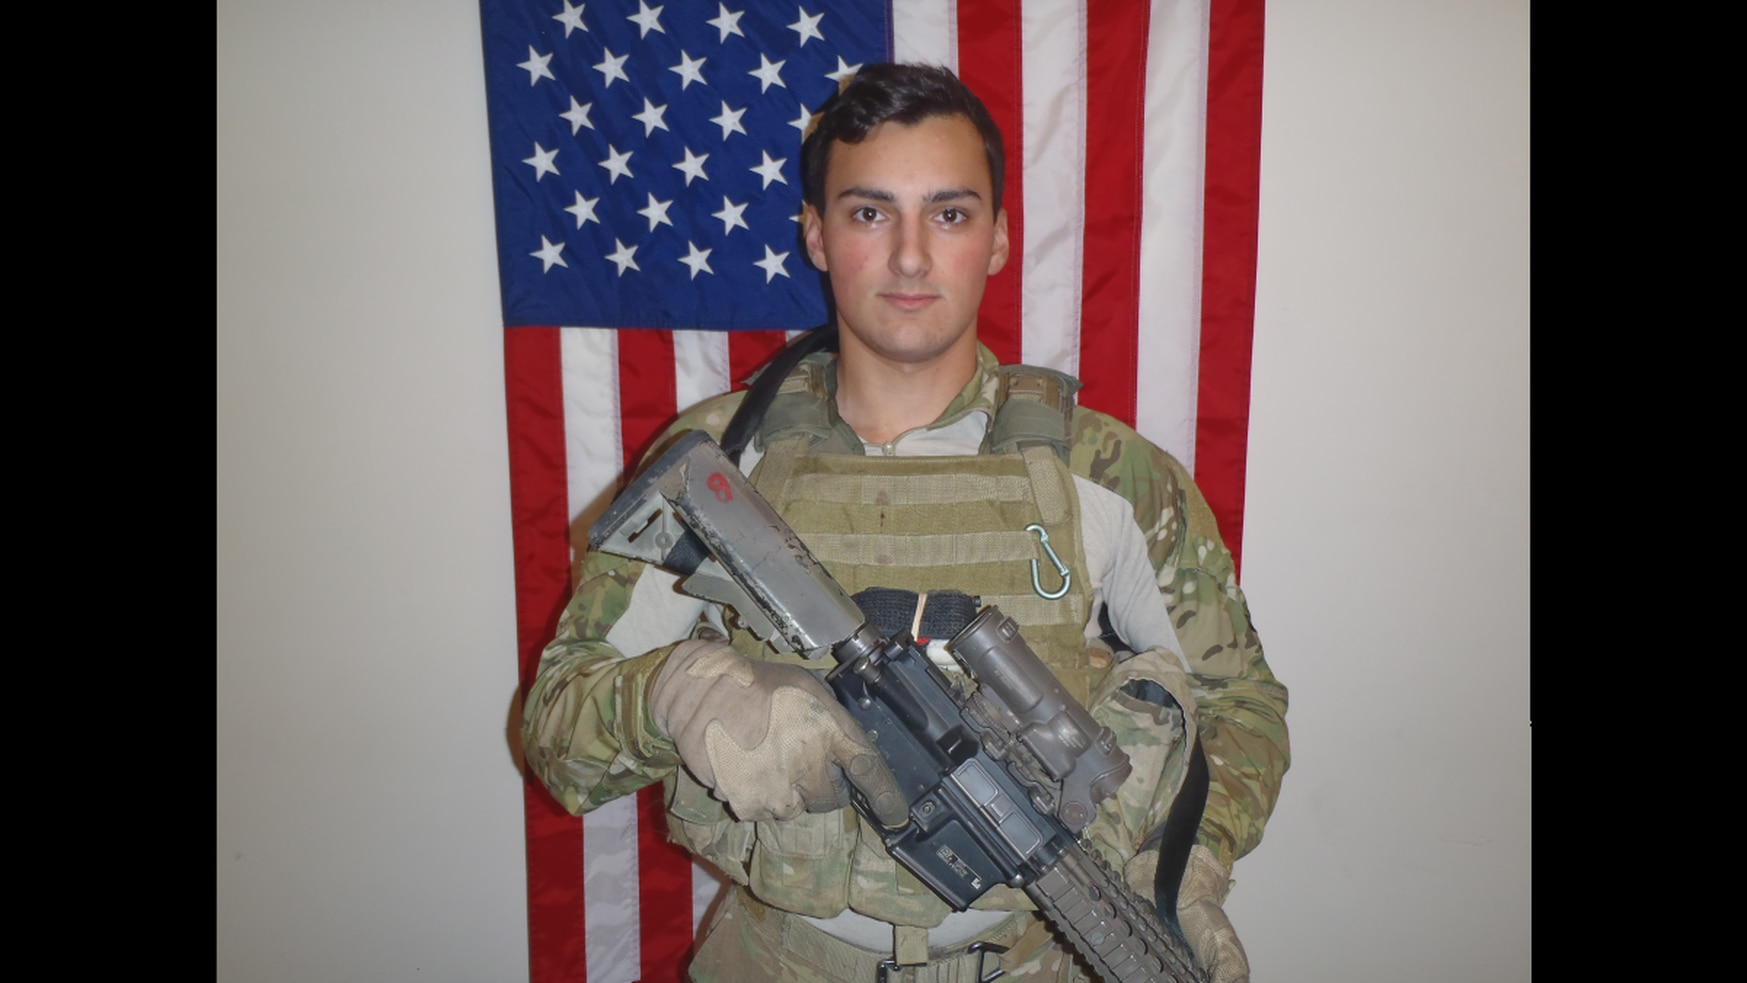 The 25-year-old Sgt. Leandro Jasso was killed during a raid in Nimruz province, Afghanistan.